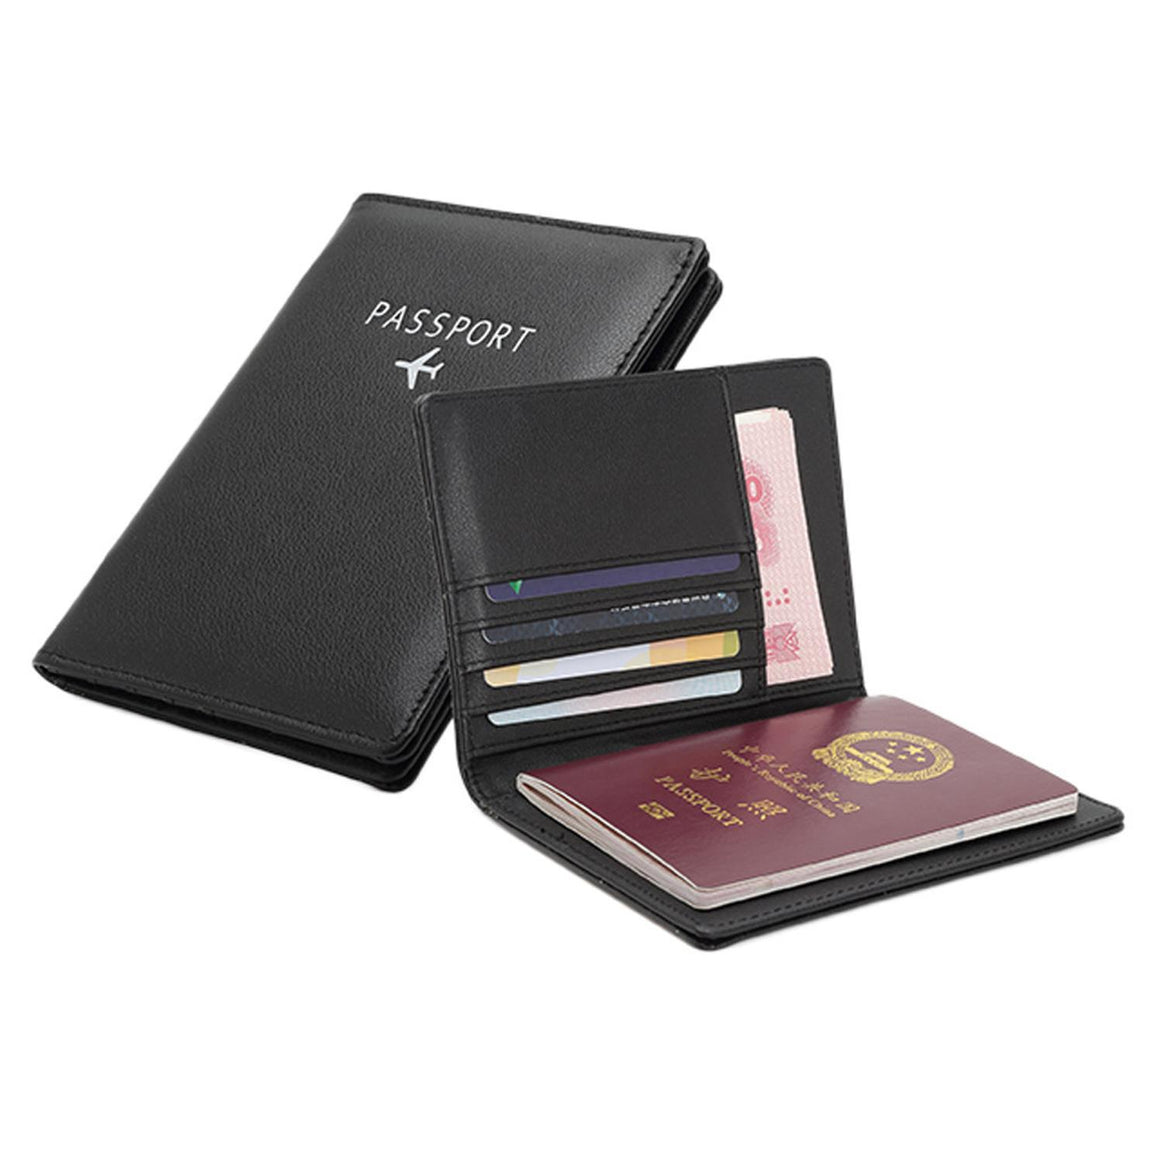 Multi-purpose Travel Passport Wallet - My Lifestyle Stores